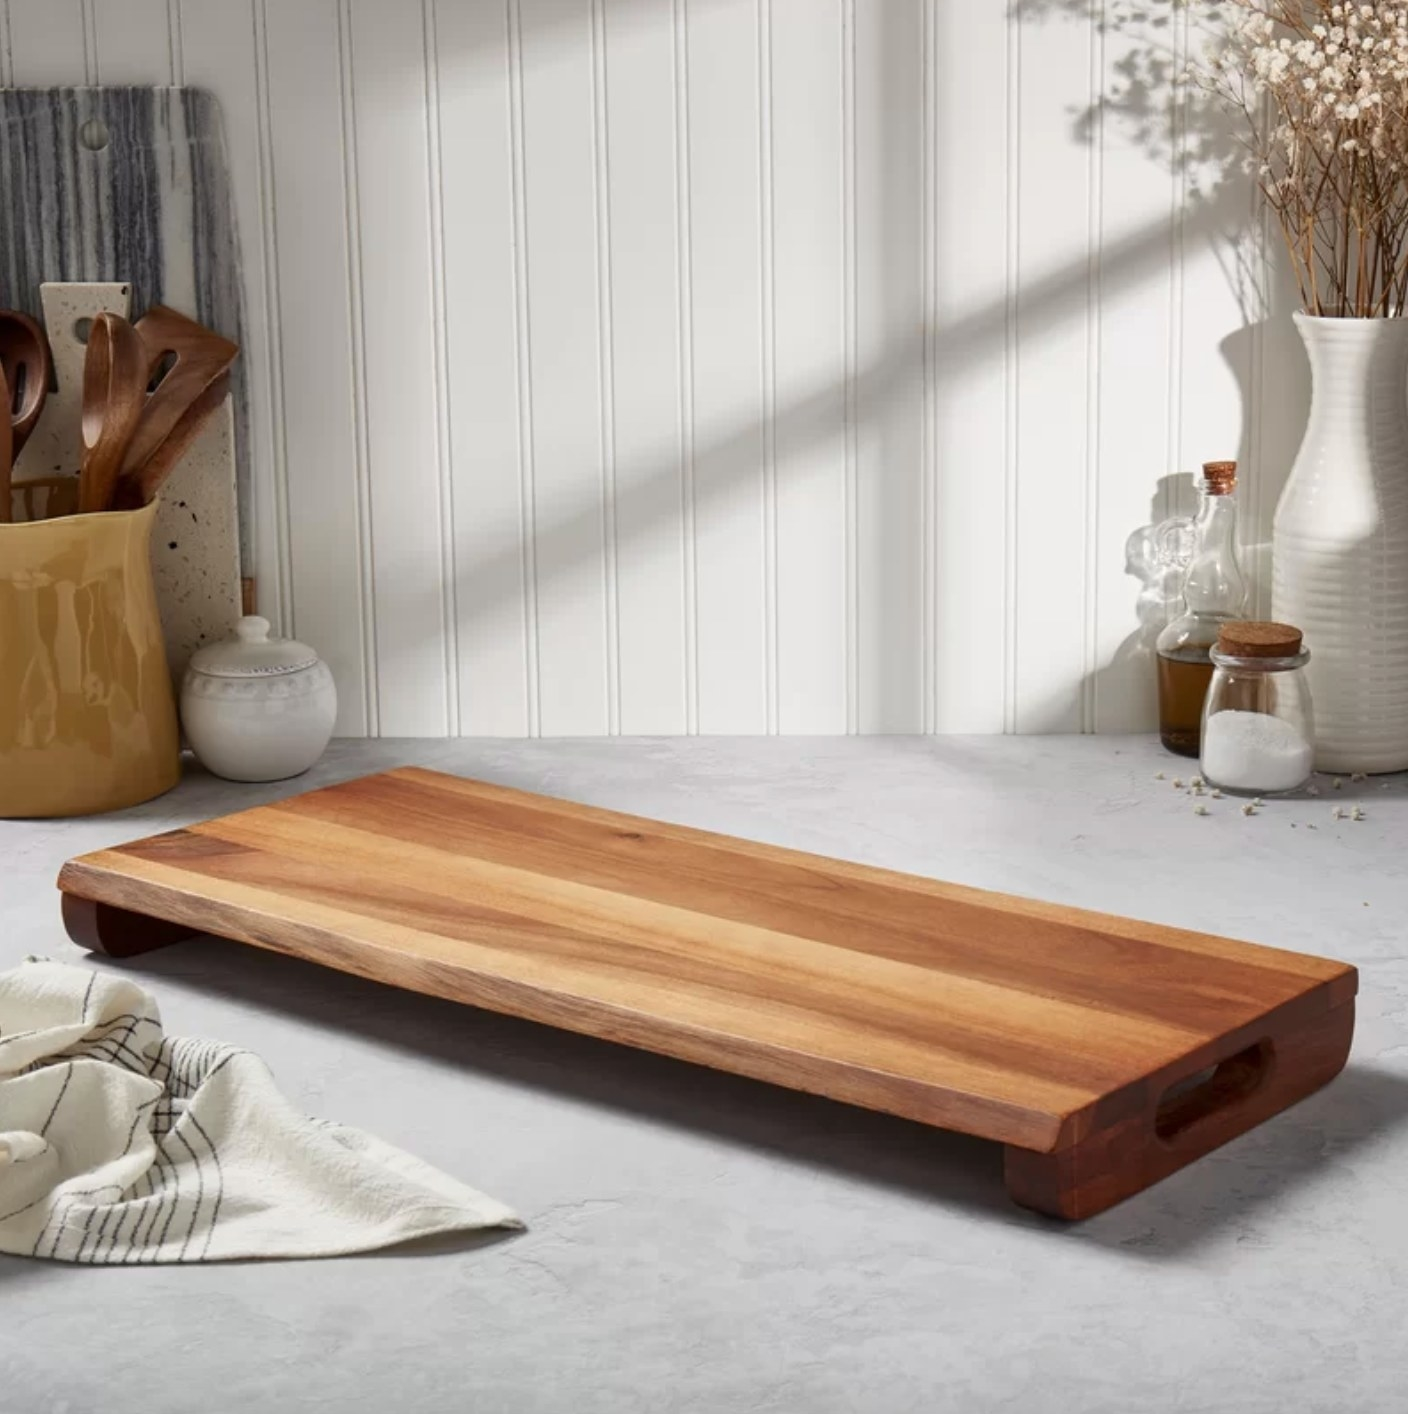 The acacia wood cutting board